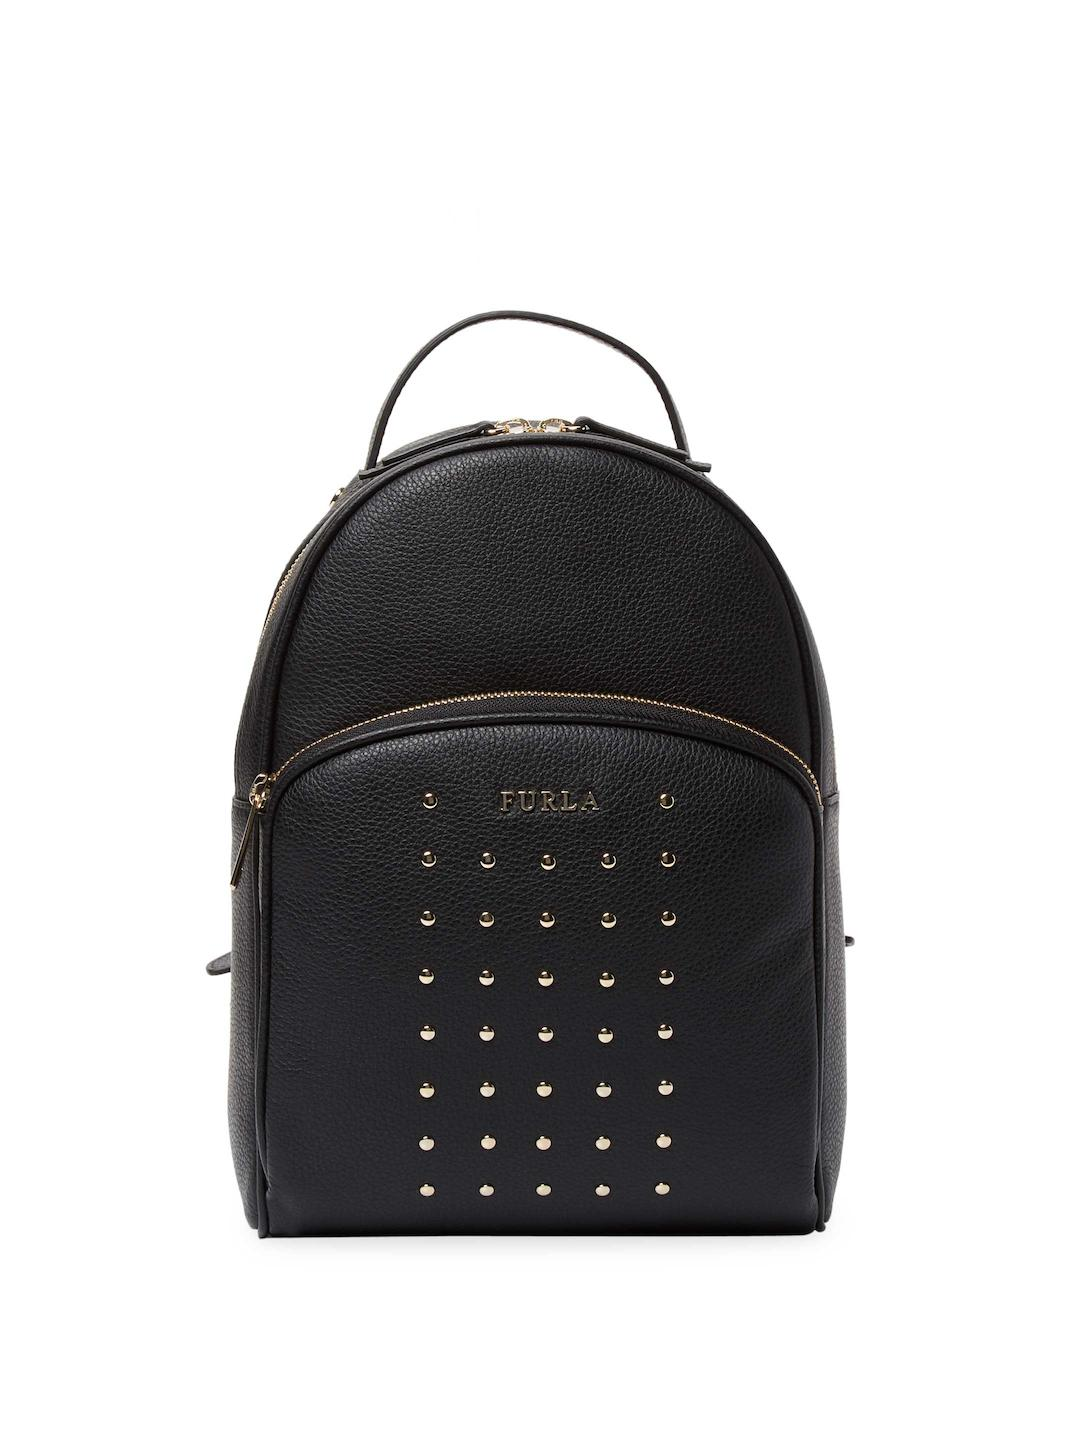 238170220ec1 Lyst - Furla Studded Frida M Backpack in Black